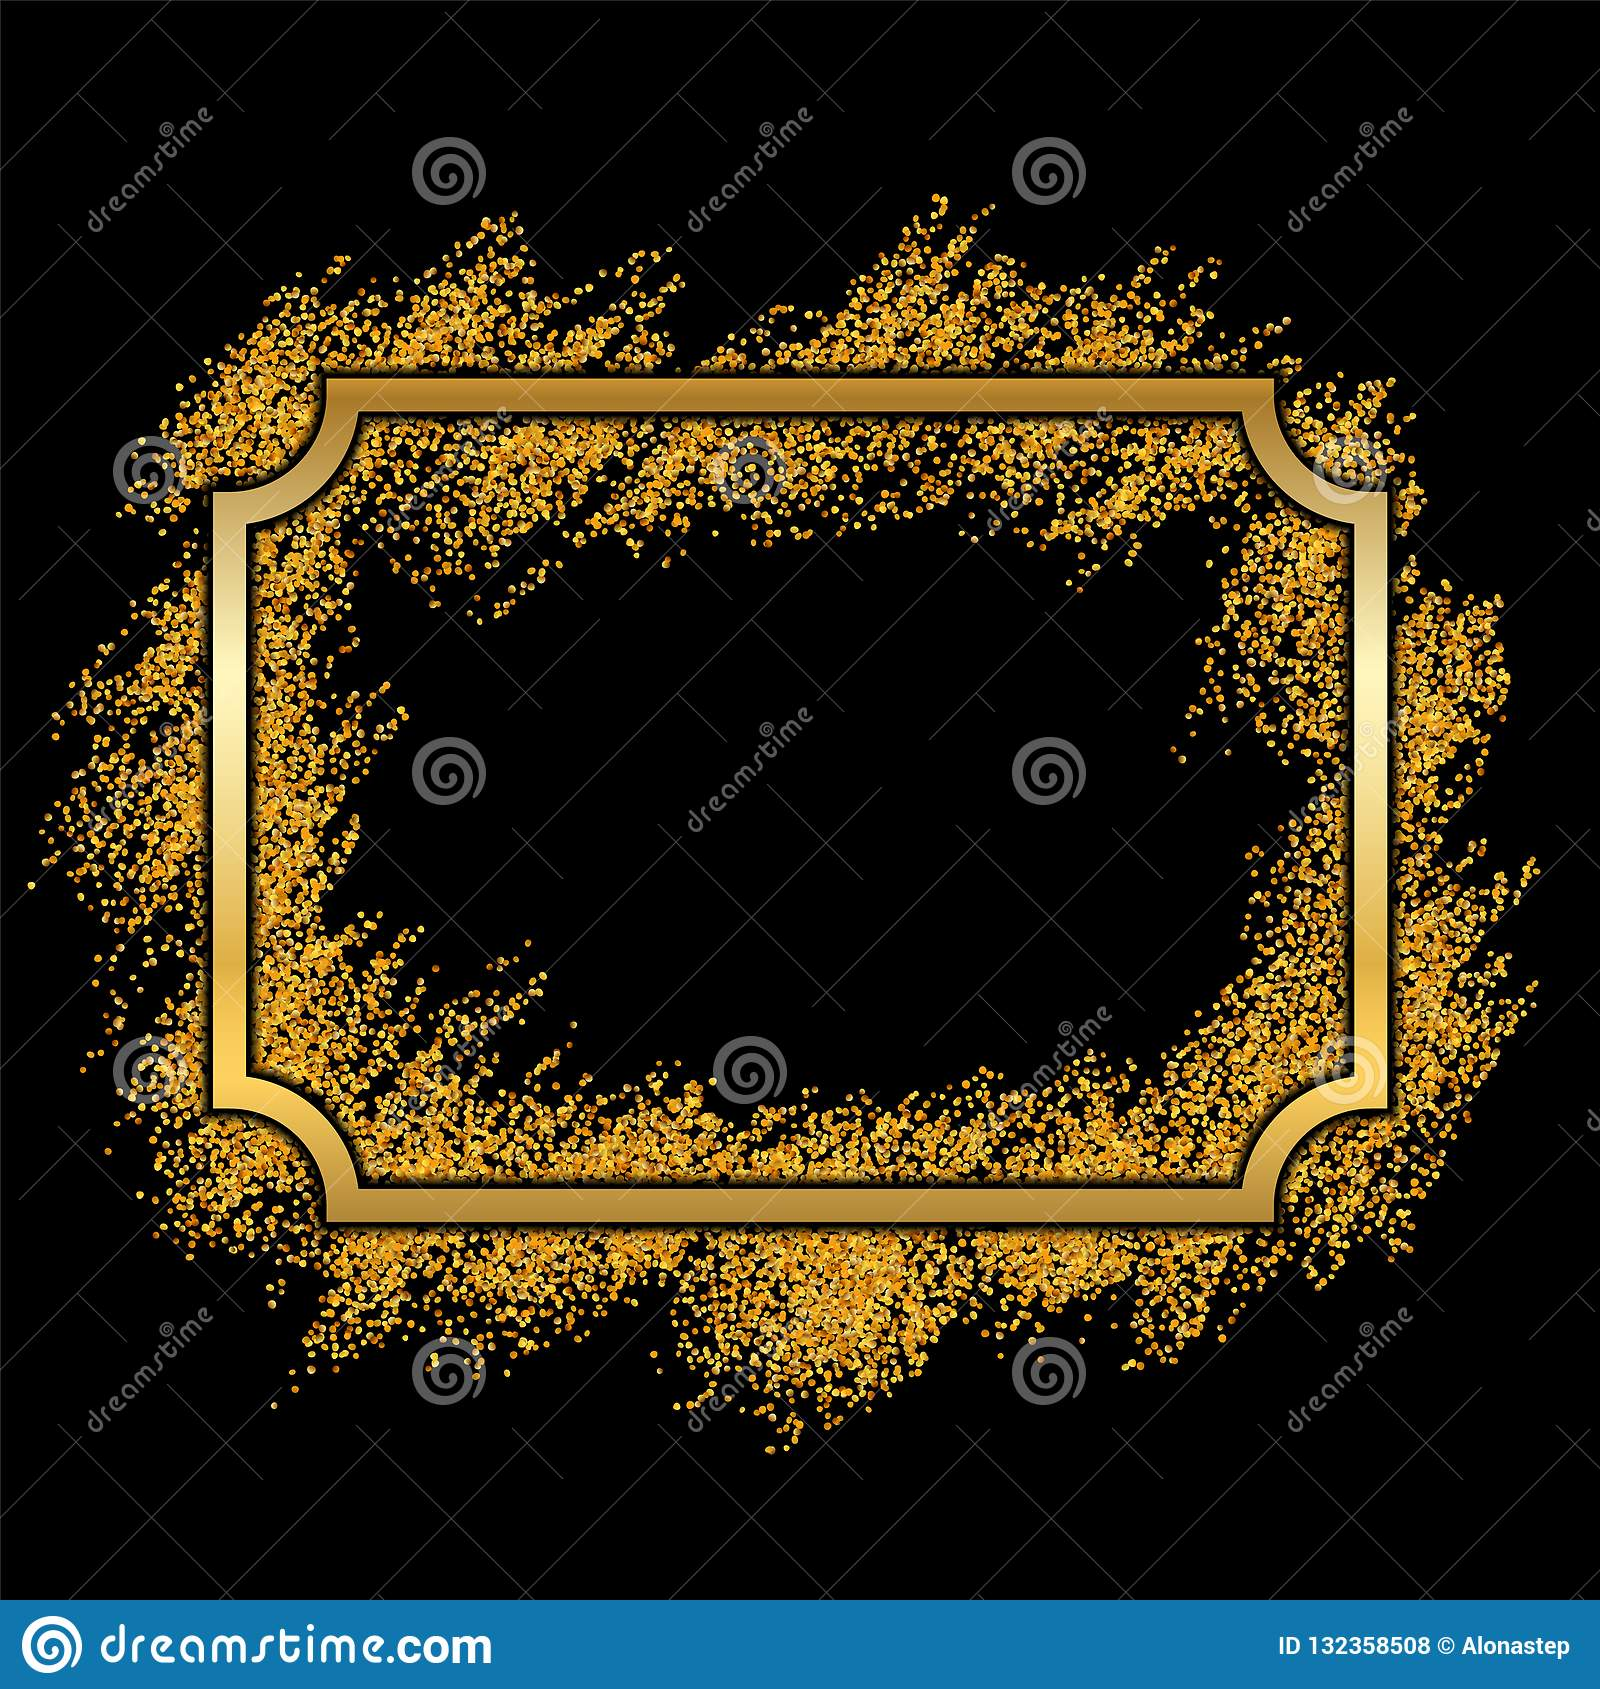 21f23c6cd788 Royalty-Free Vector. Gold frame. Beautiful golden glitter design. Vintage  style decorative border